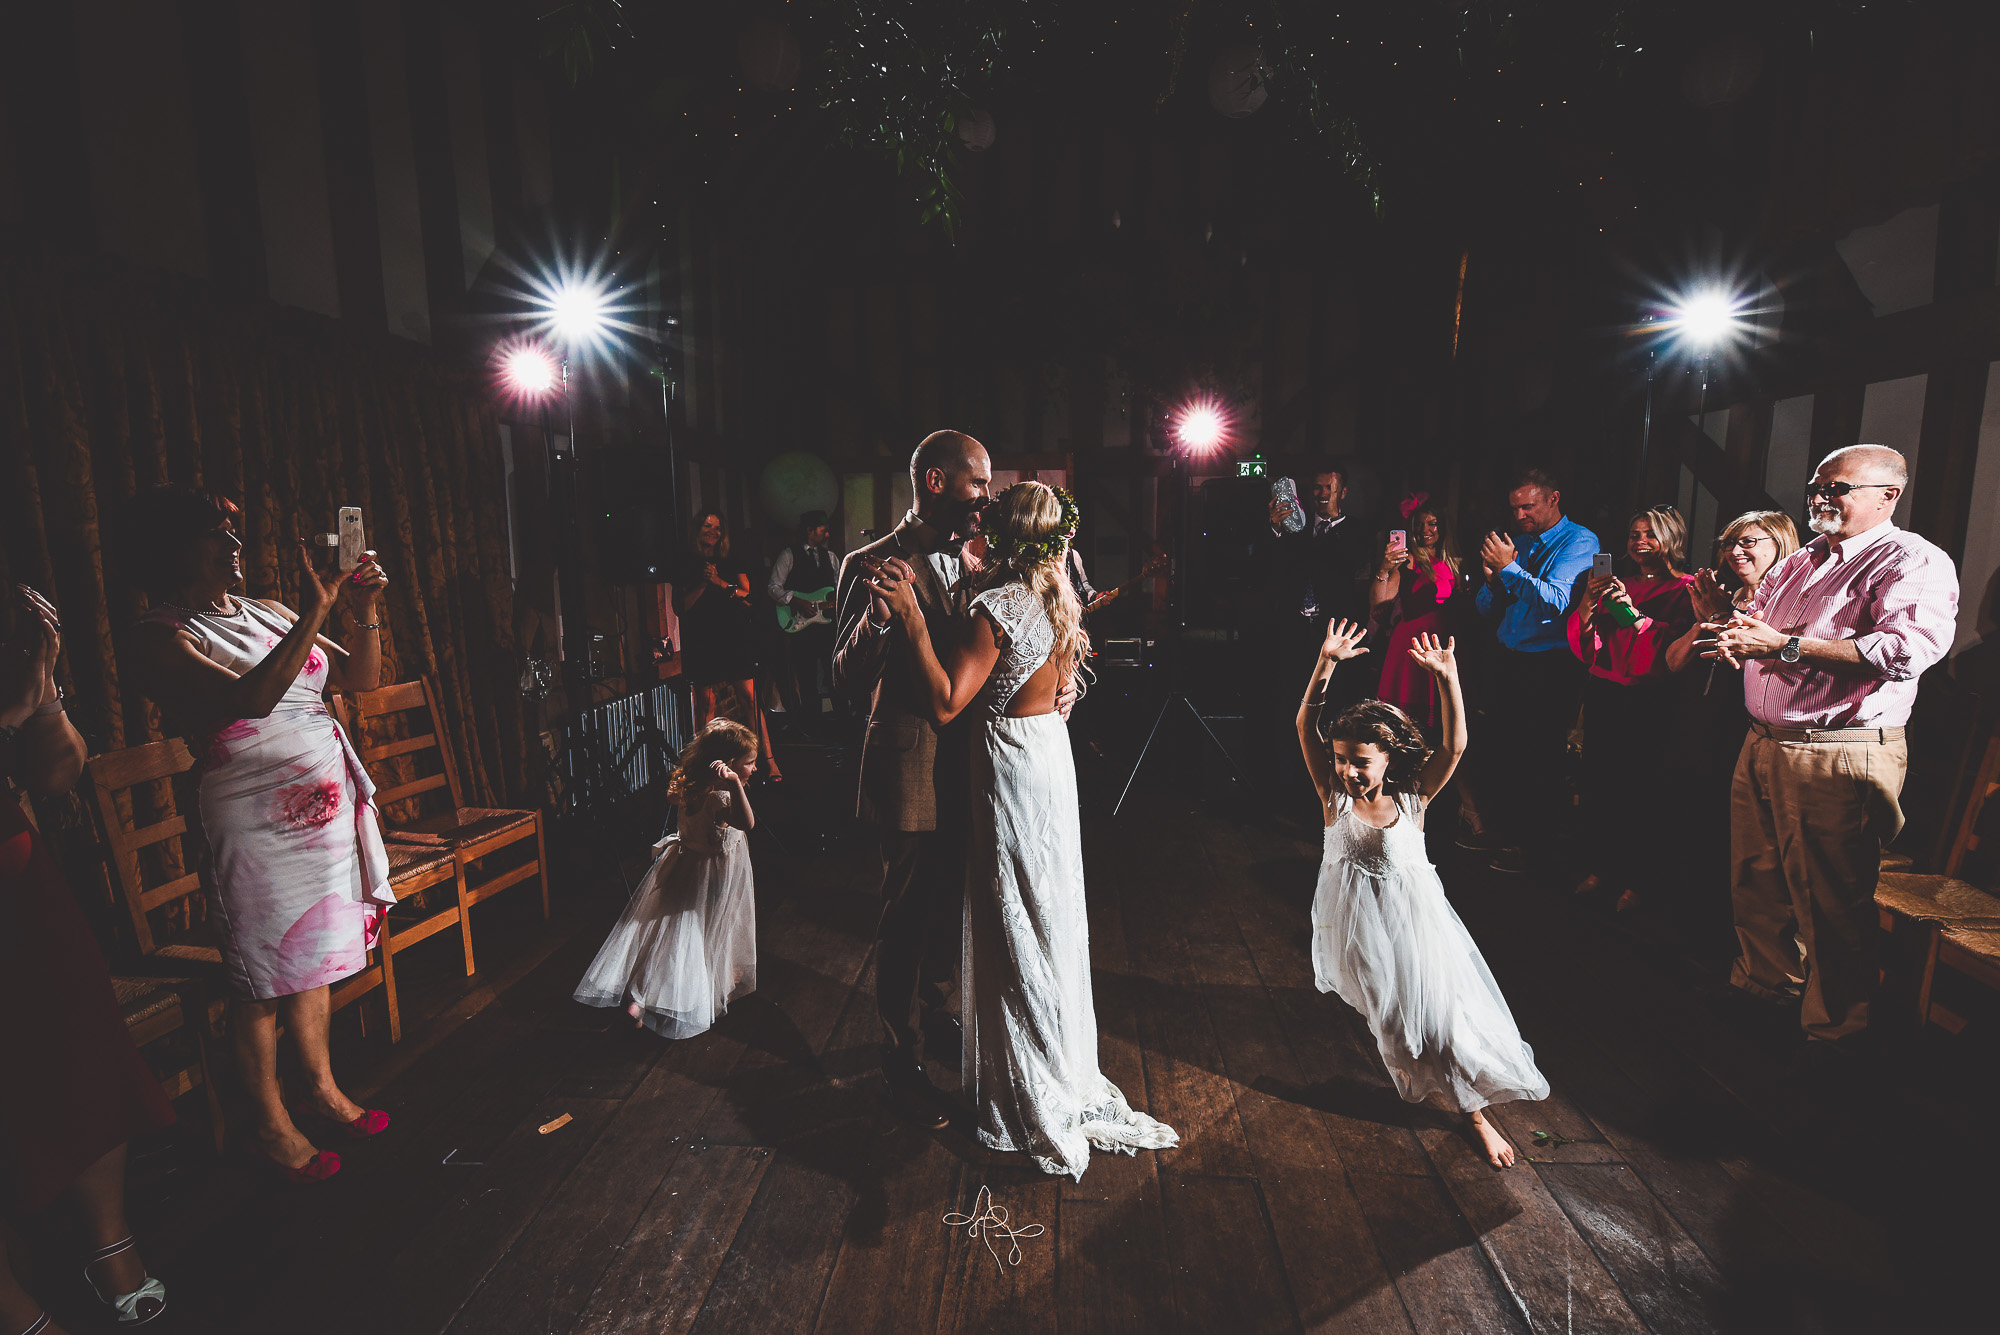 Gate Street Barn Wedding Photography | Nikki & Rich Gate Street Barn Wedding Photyography 055